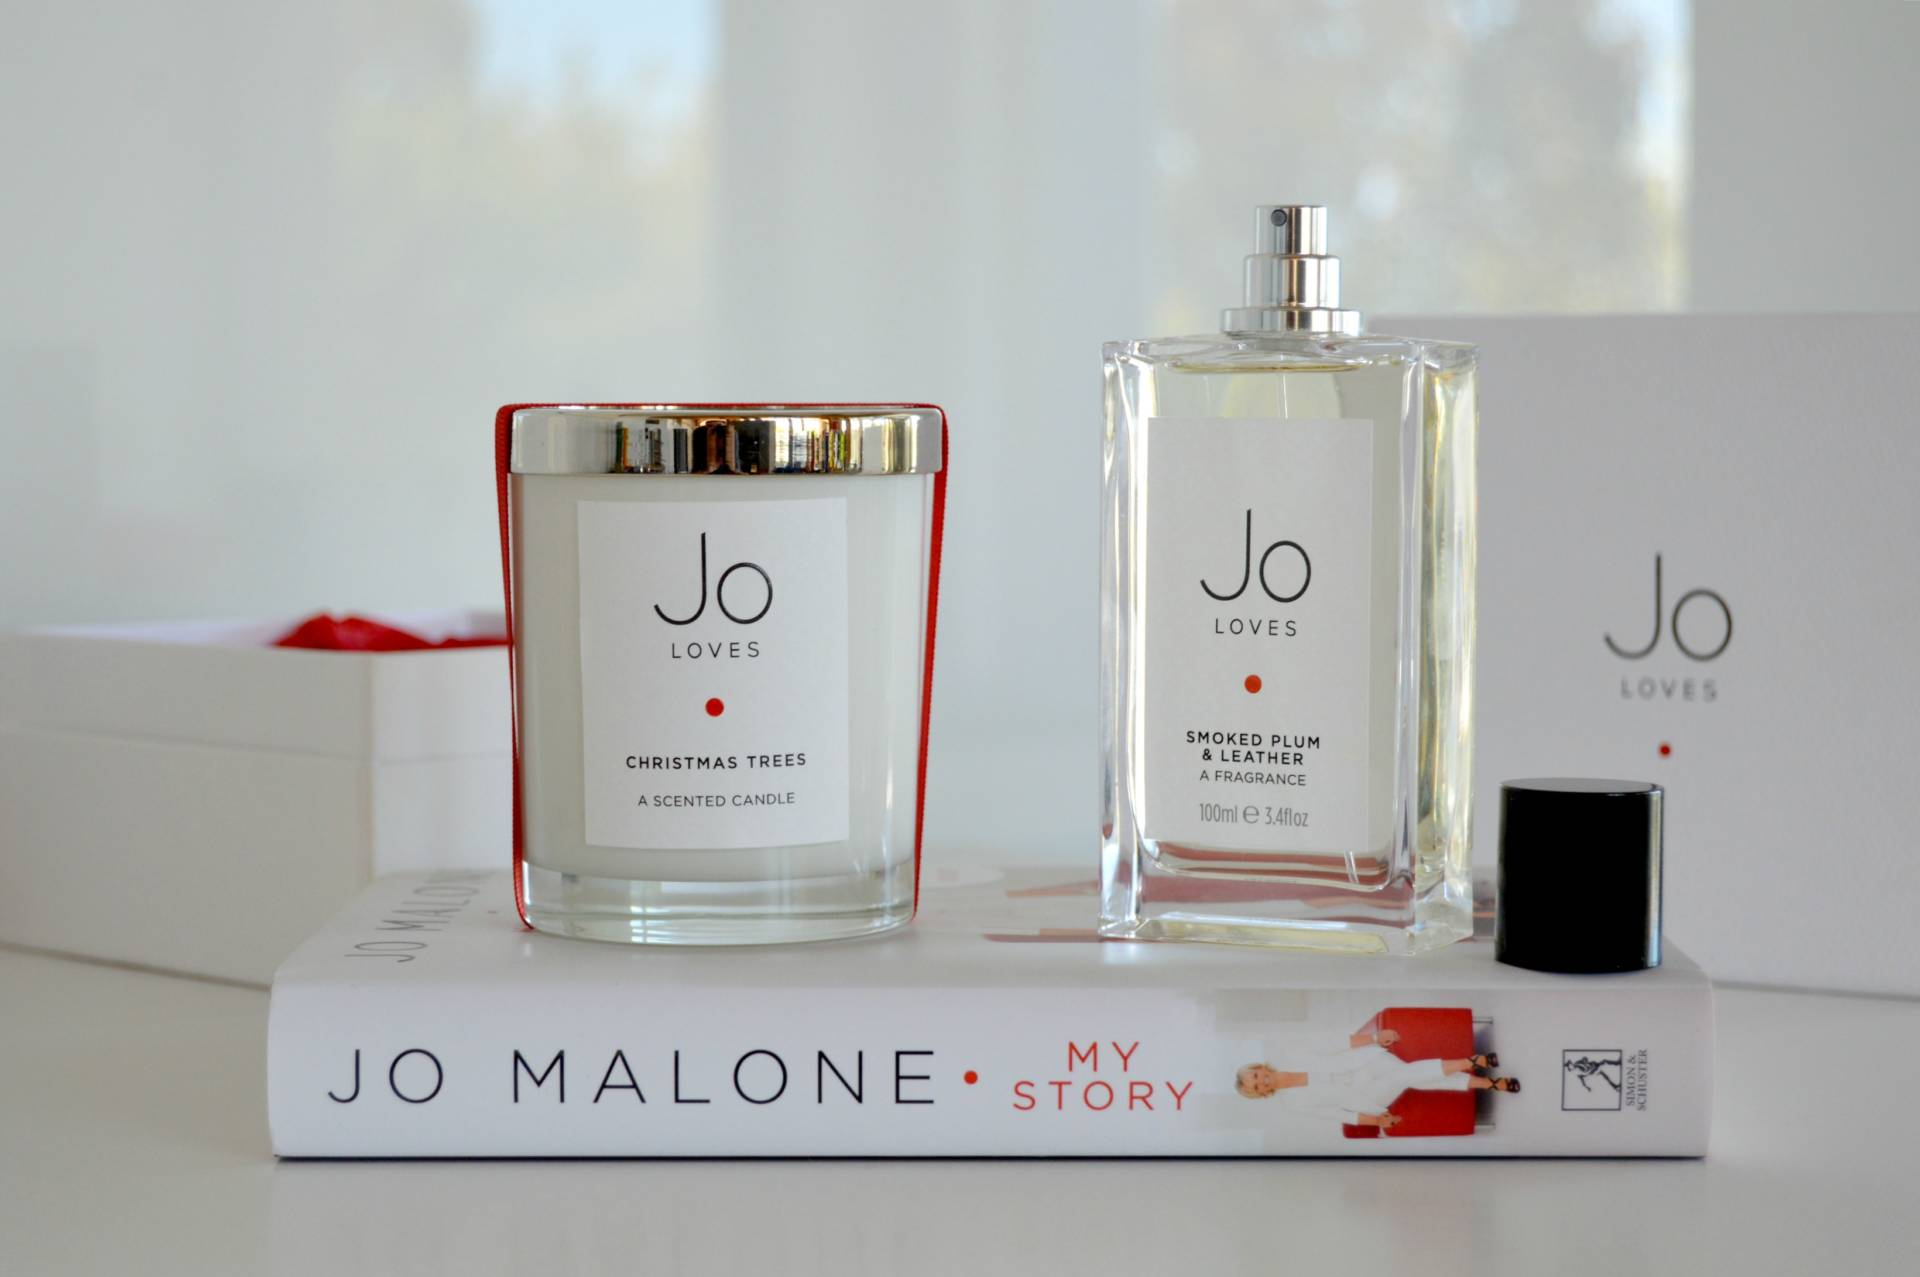 jo-loves-malone-my-story-book-christmas-candle-smoked-plum-leather-fragrance-review